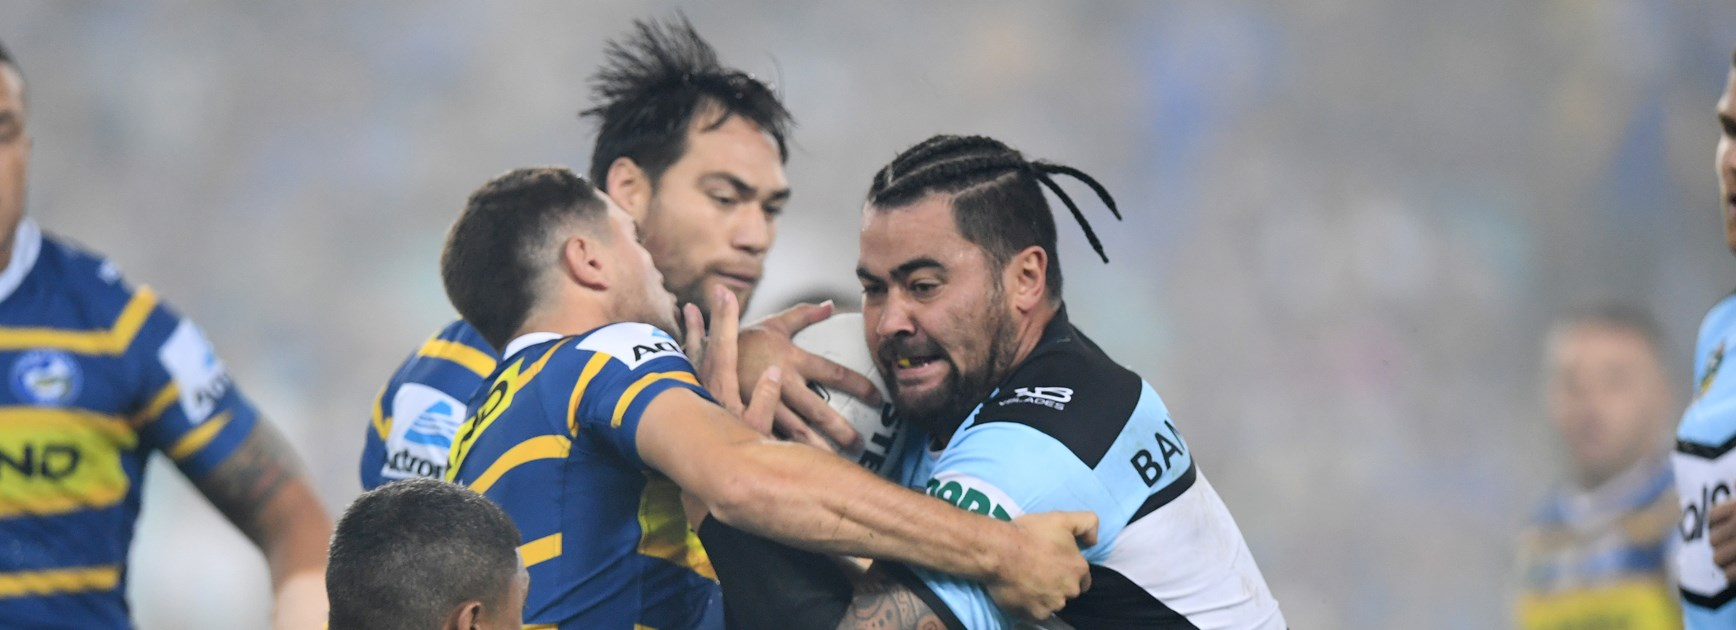 Fifita trying to right his wrongs with refs